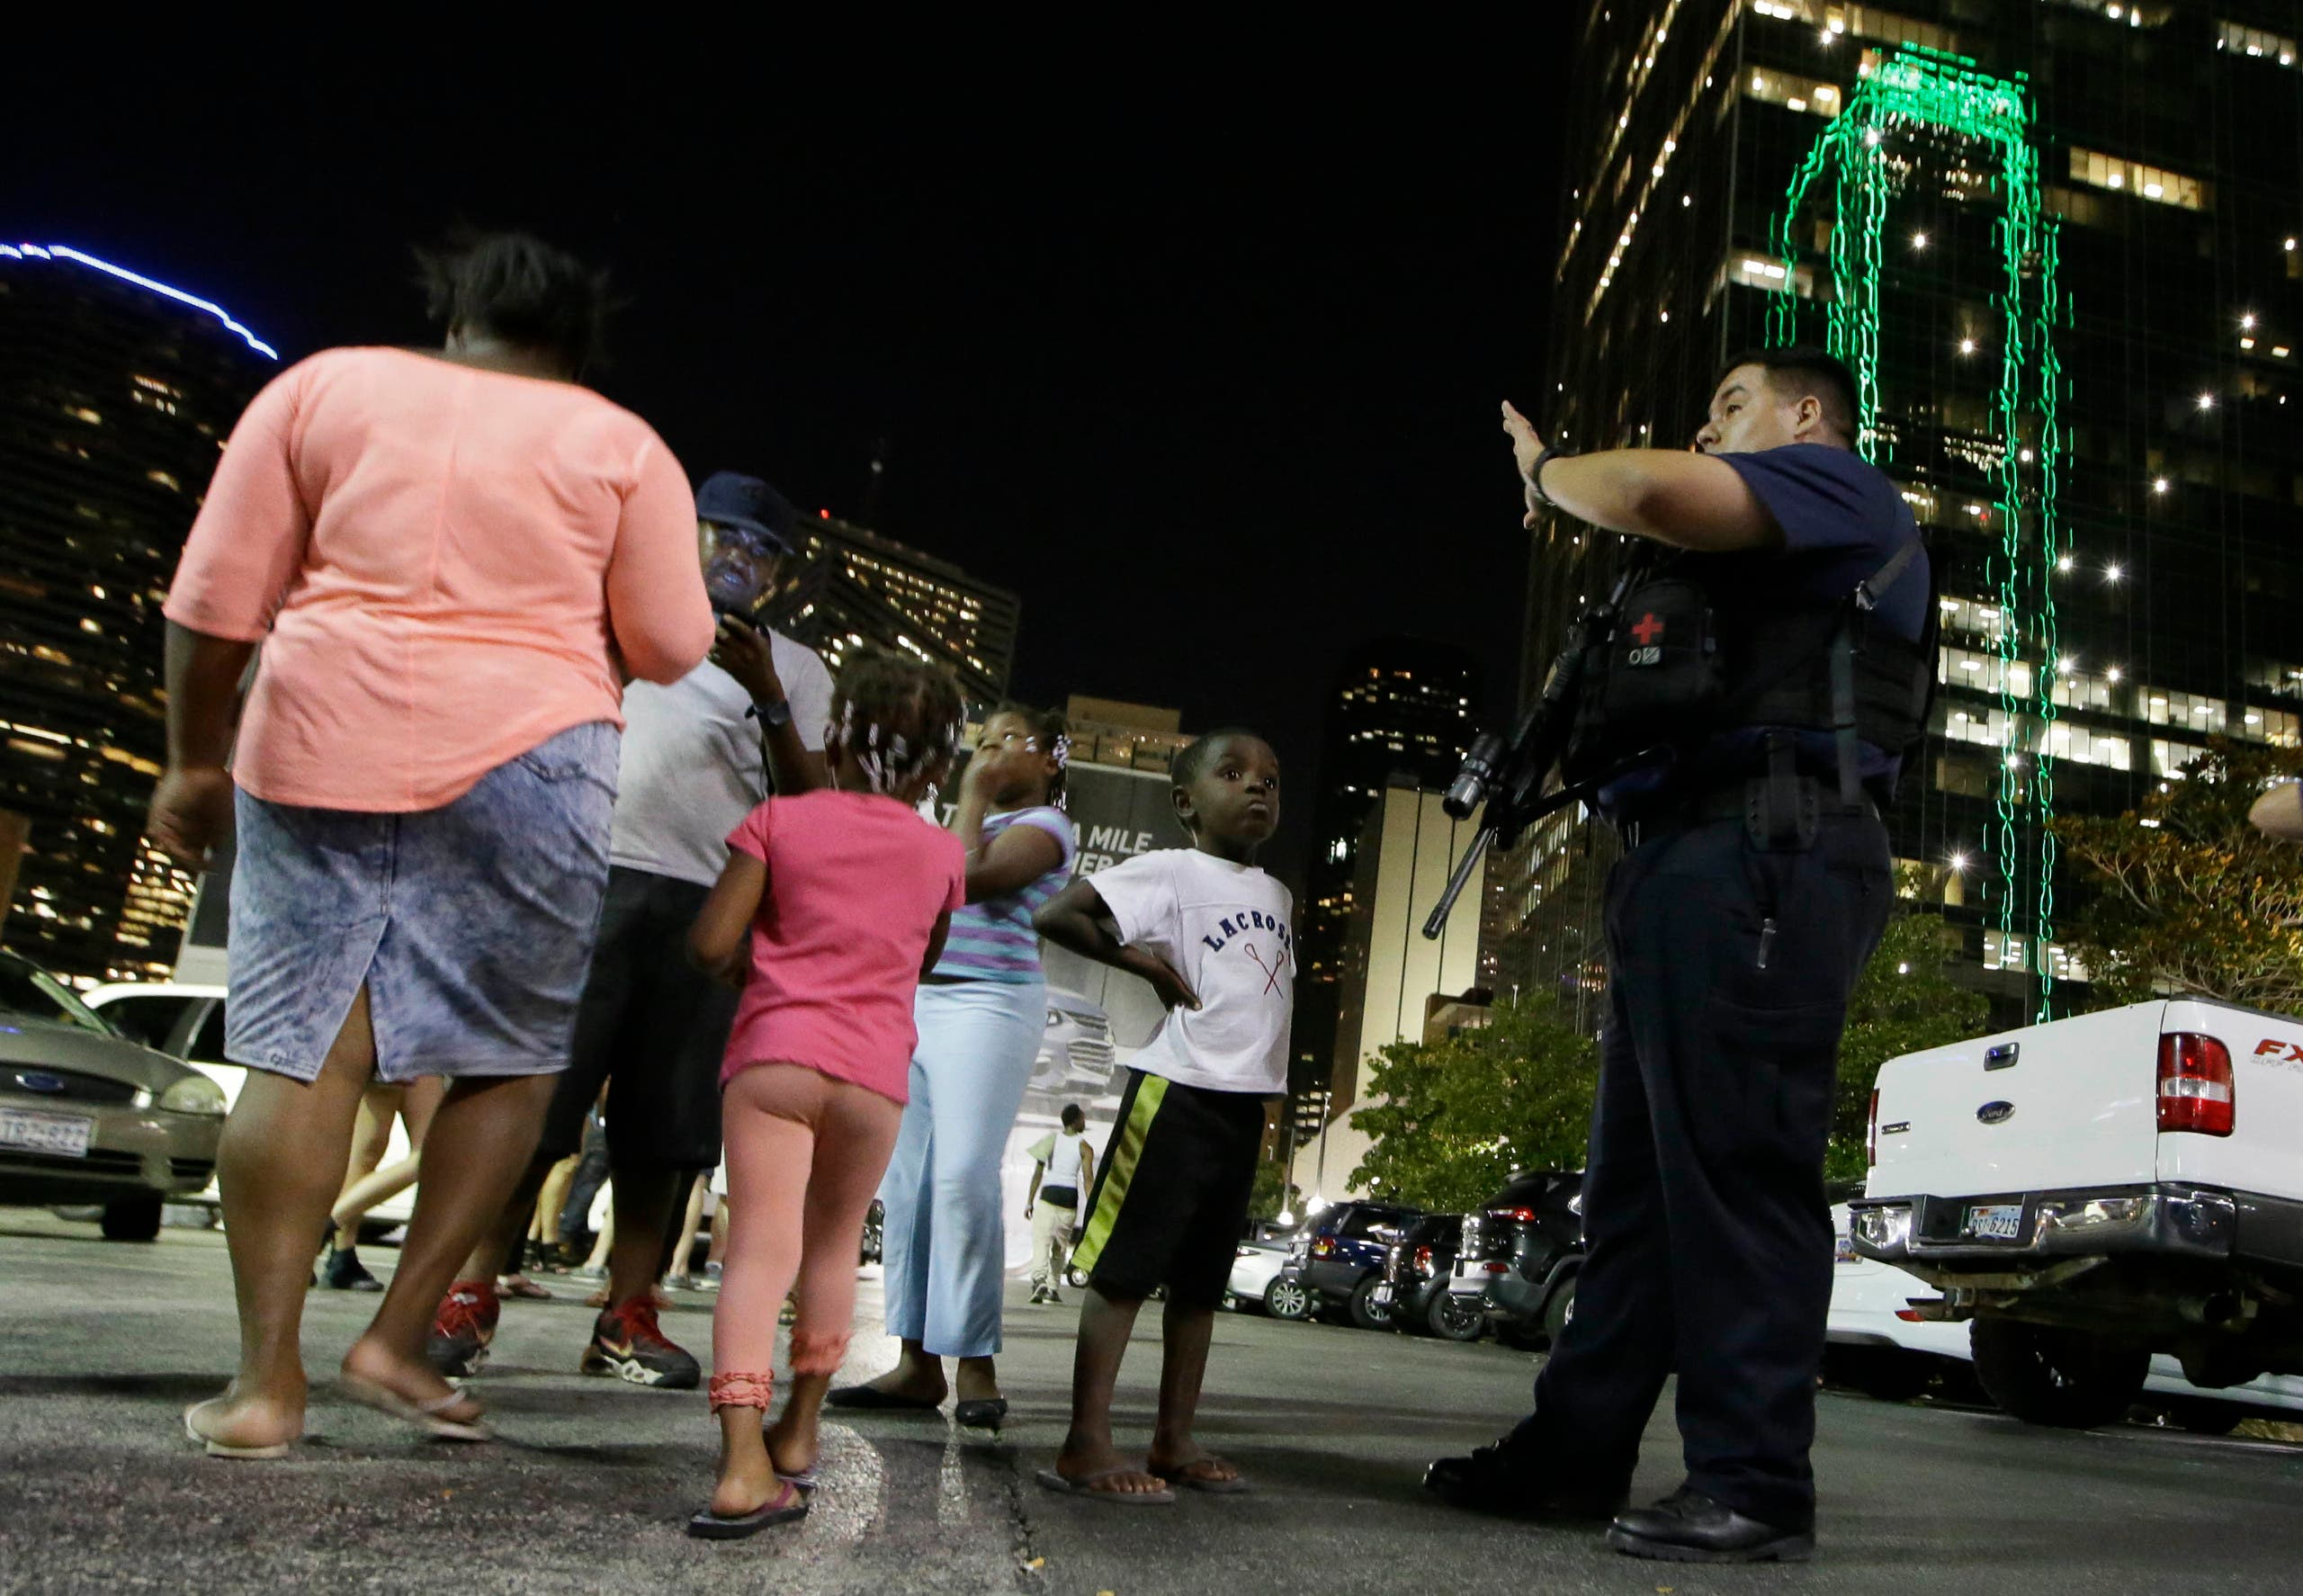 Dallas police order people away from the area after several police were shot in downtown Dallas, Thursday, July 7, 2016. (AP)